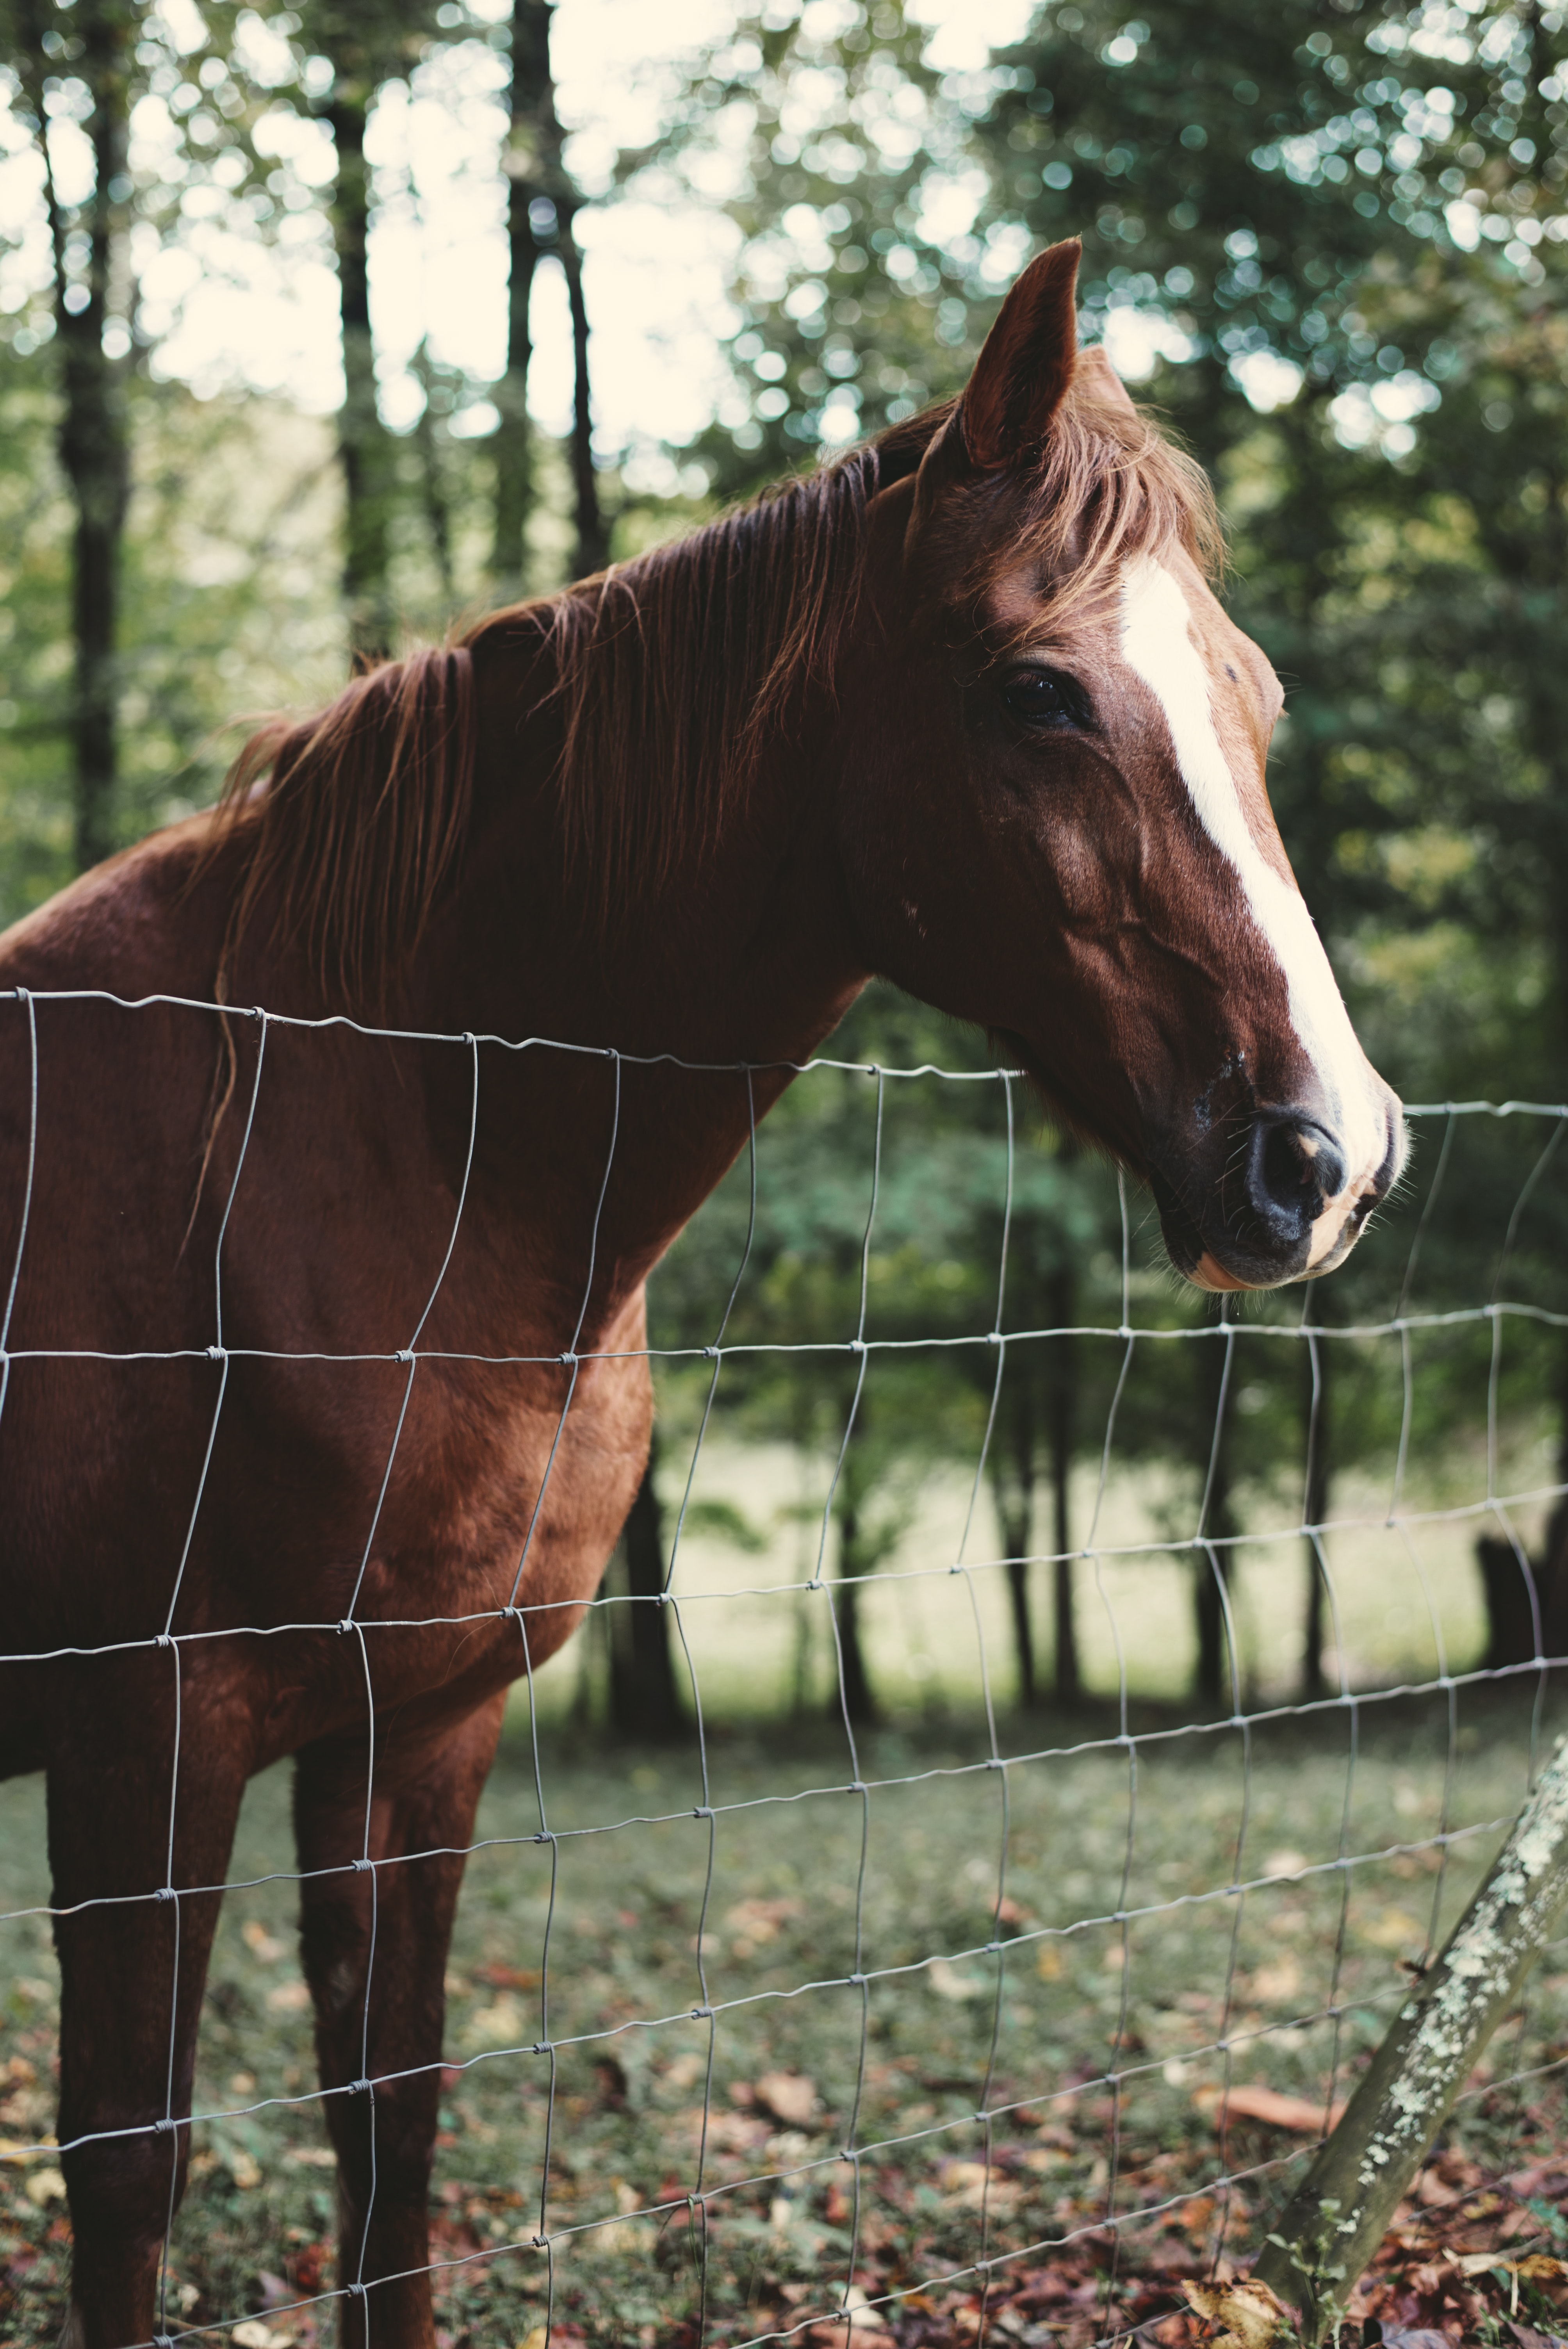 A brown horse with a white stripe on its head looking over a wire fence